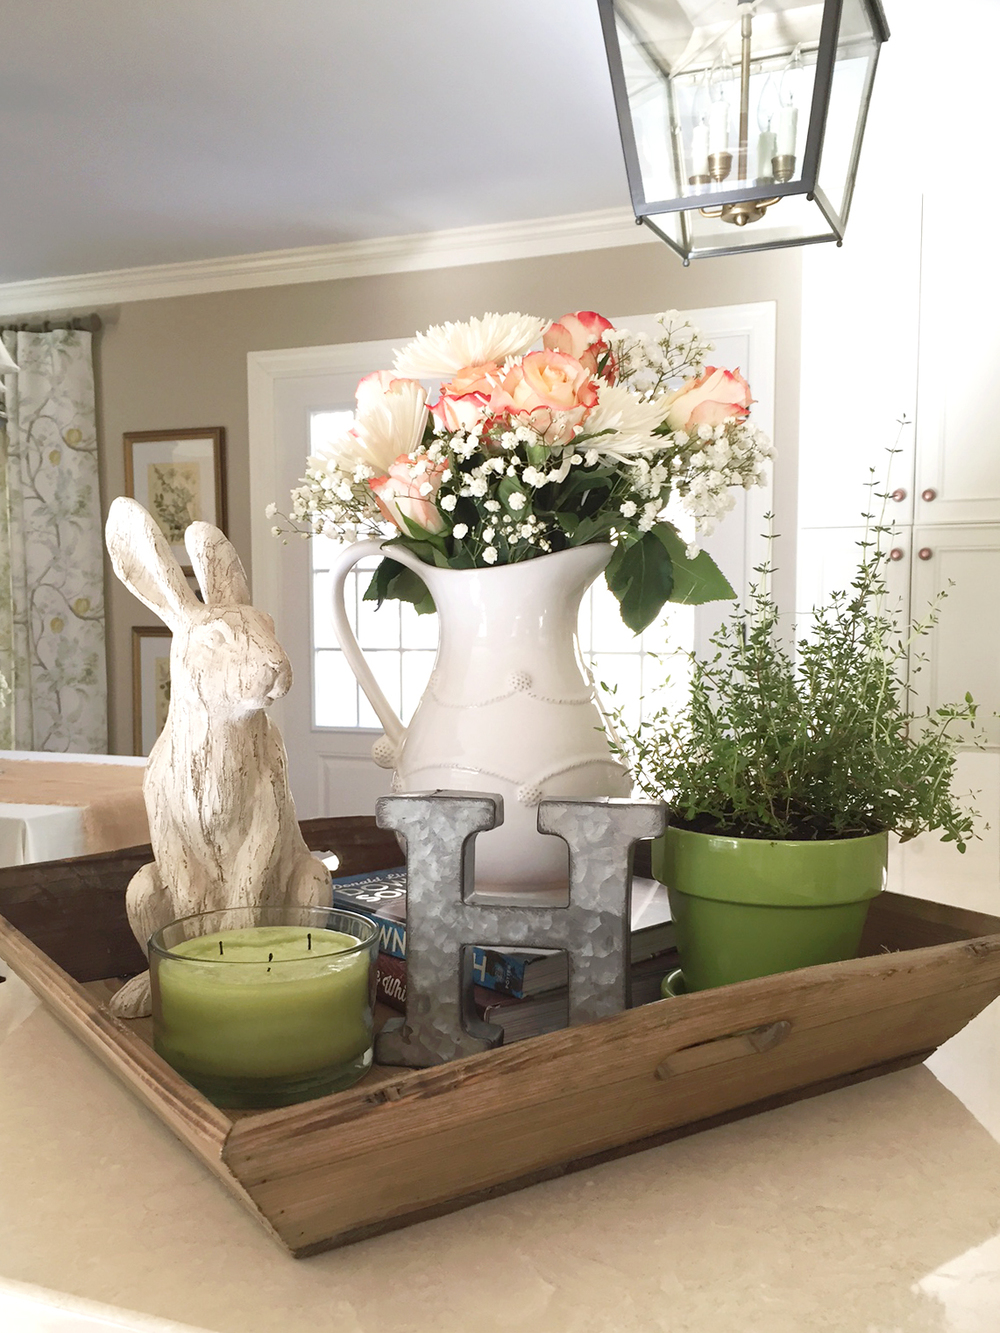 Tips for Creating an Easter Vignette - A Wonderful Thought